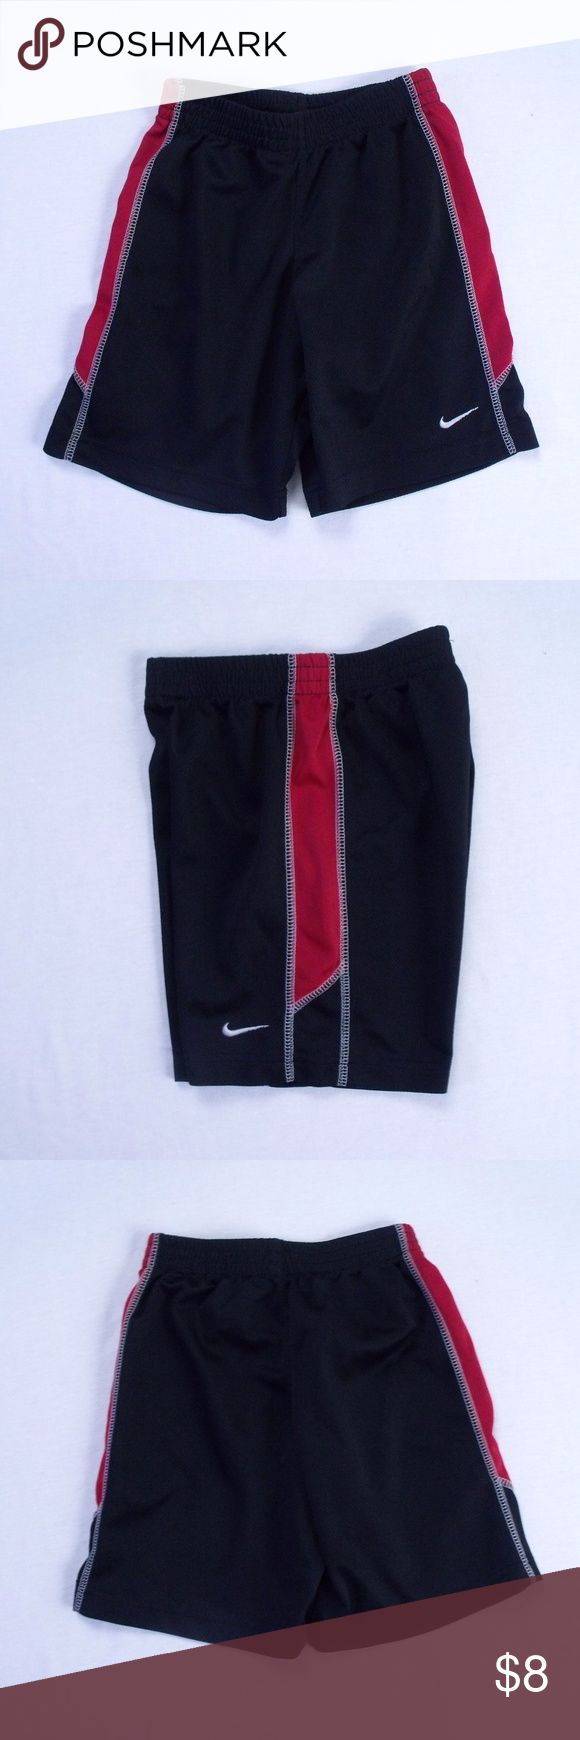 Boys Nike Shorts Size: 6  ~ Nike black and red shorts. ~ 100% Polyester ~ shorts are in nice condition Nike Bottoms Shorts